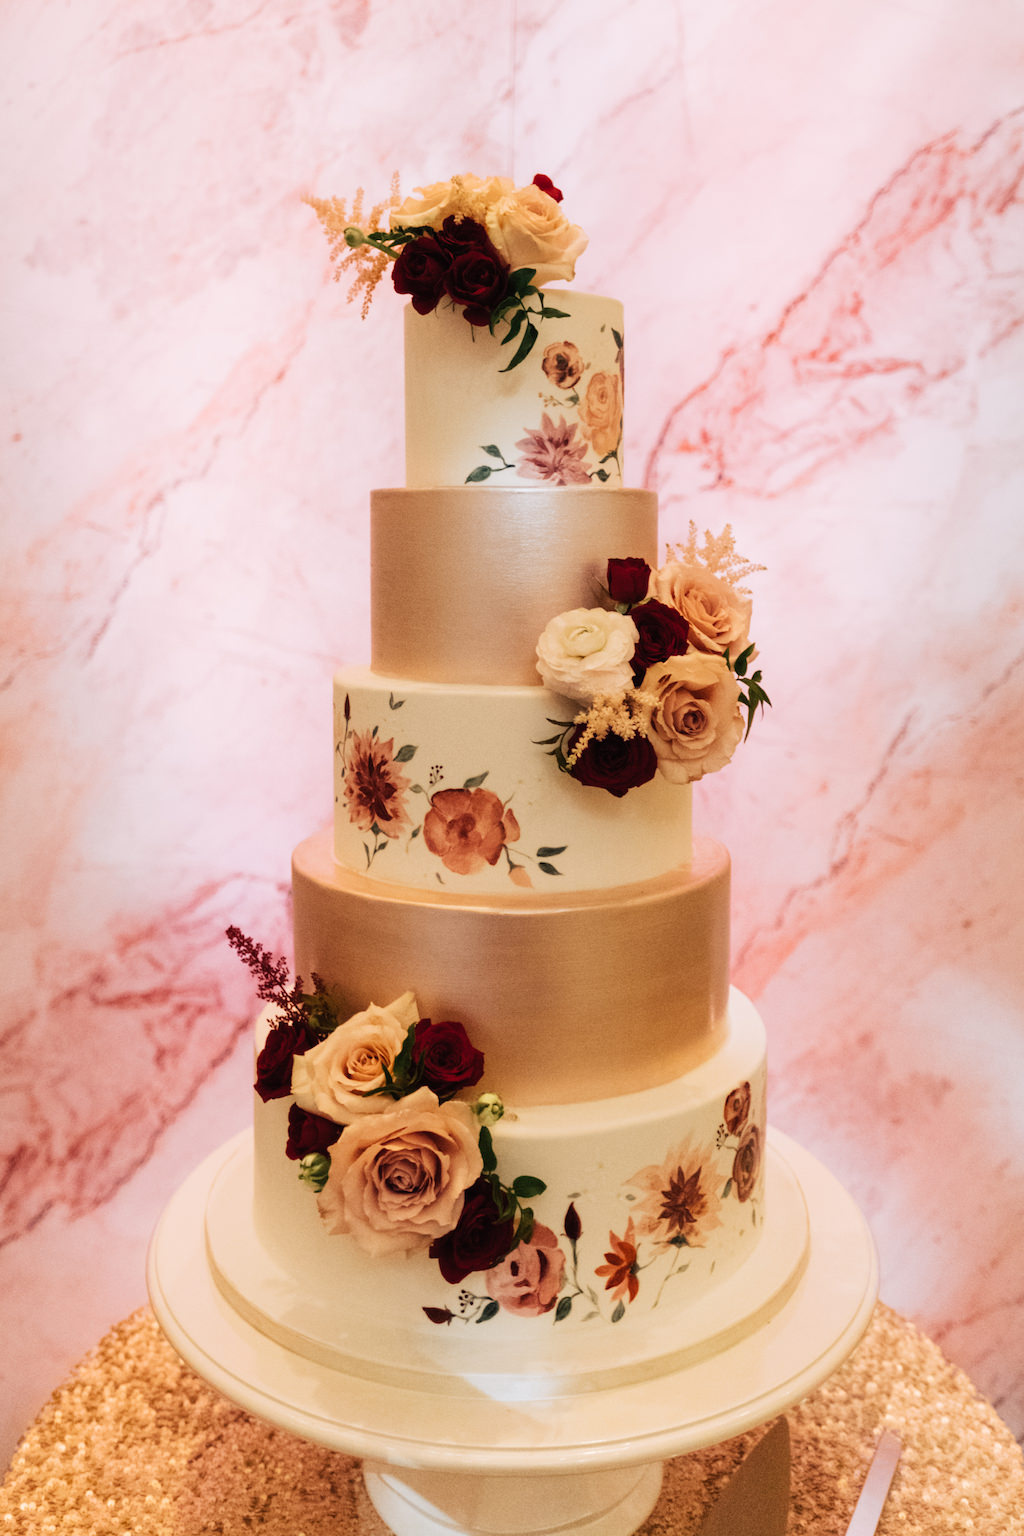 5 Tier Elegant Wedding Cake White Tiers With Painted